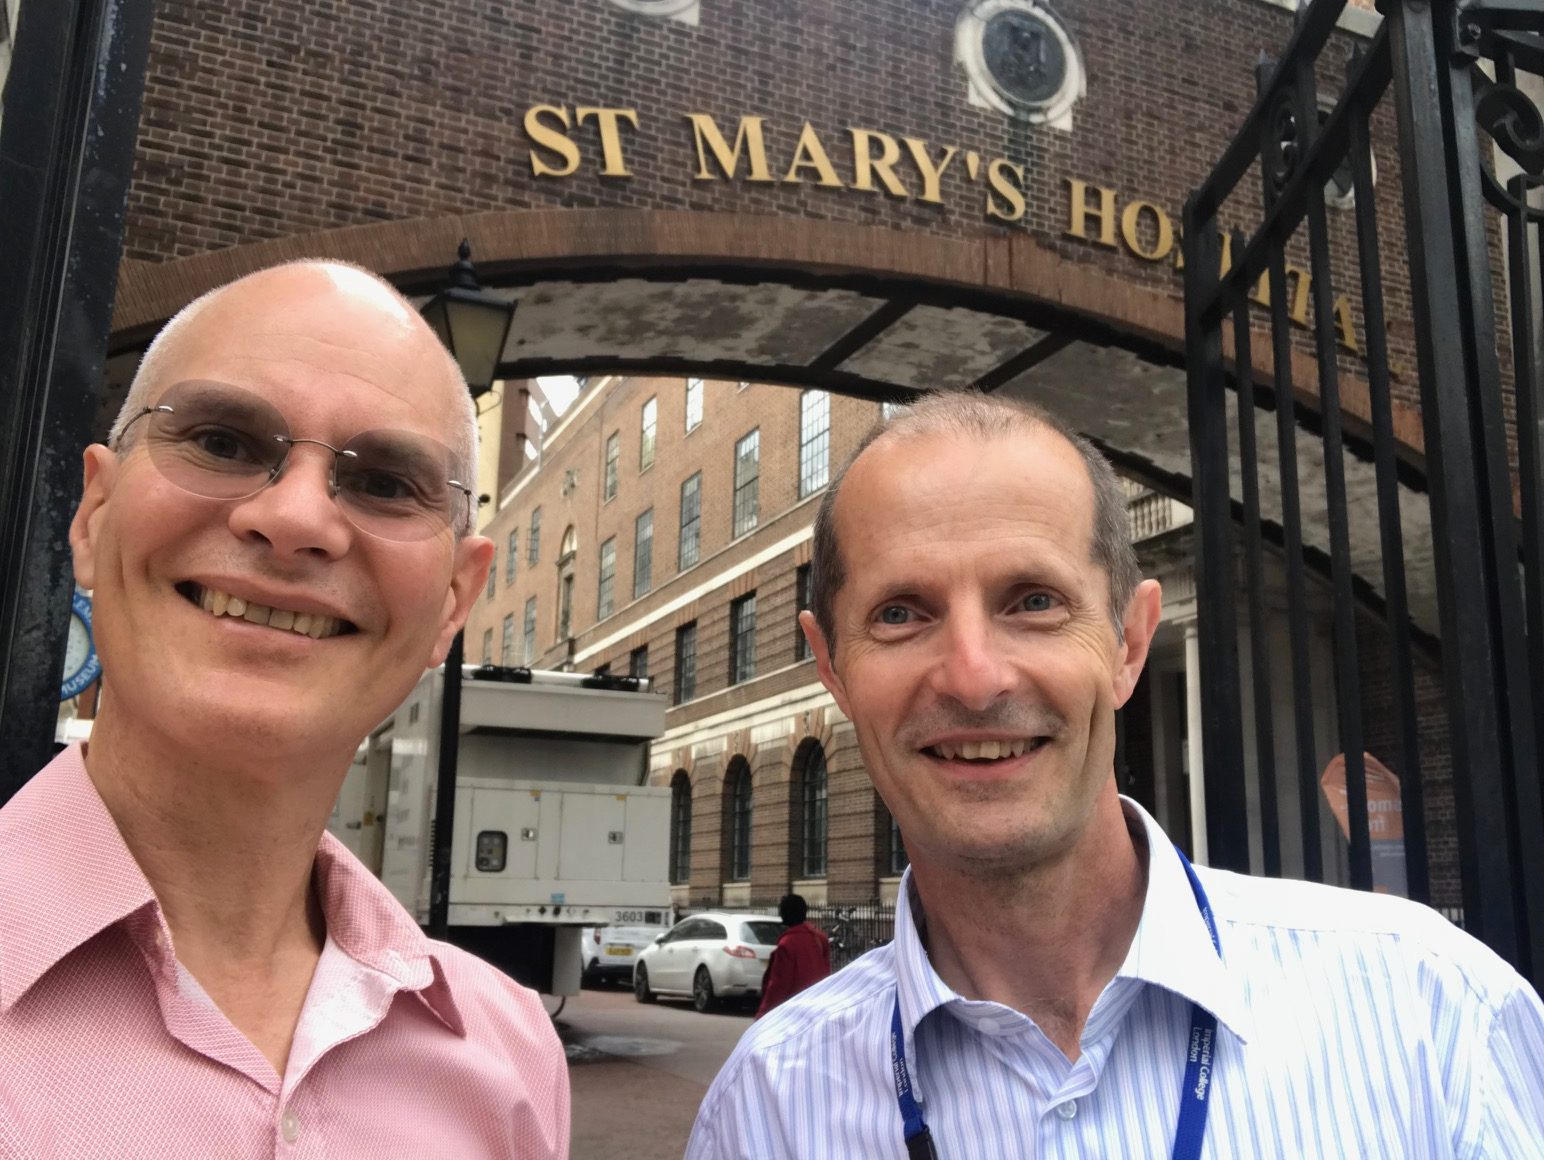 Stephen Kent and Robin Shattock standing outside the entrance to St Mary's hospital